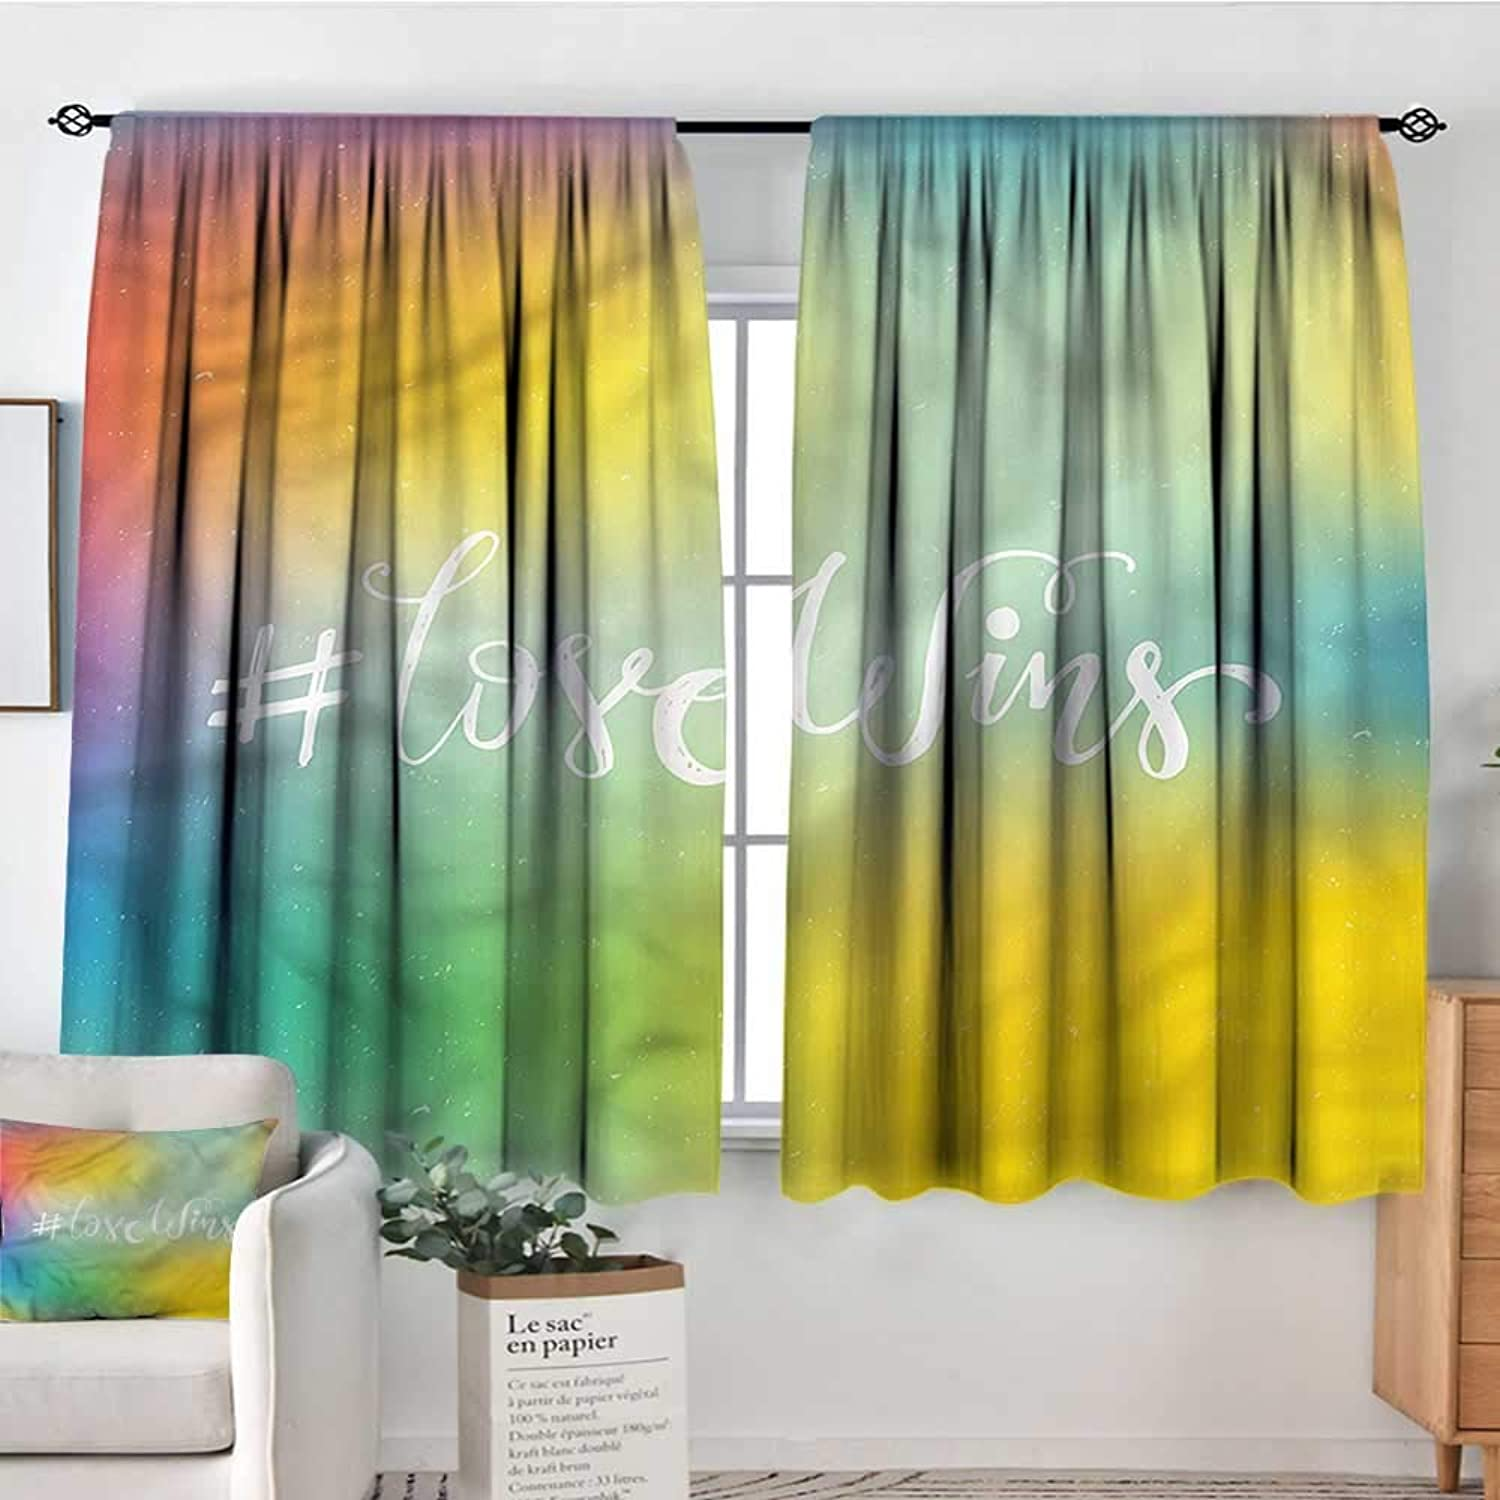 Pride,Backout Curtain Romantic LGBT Community 42 X63  Patterned Drape for Kids Bedroom